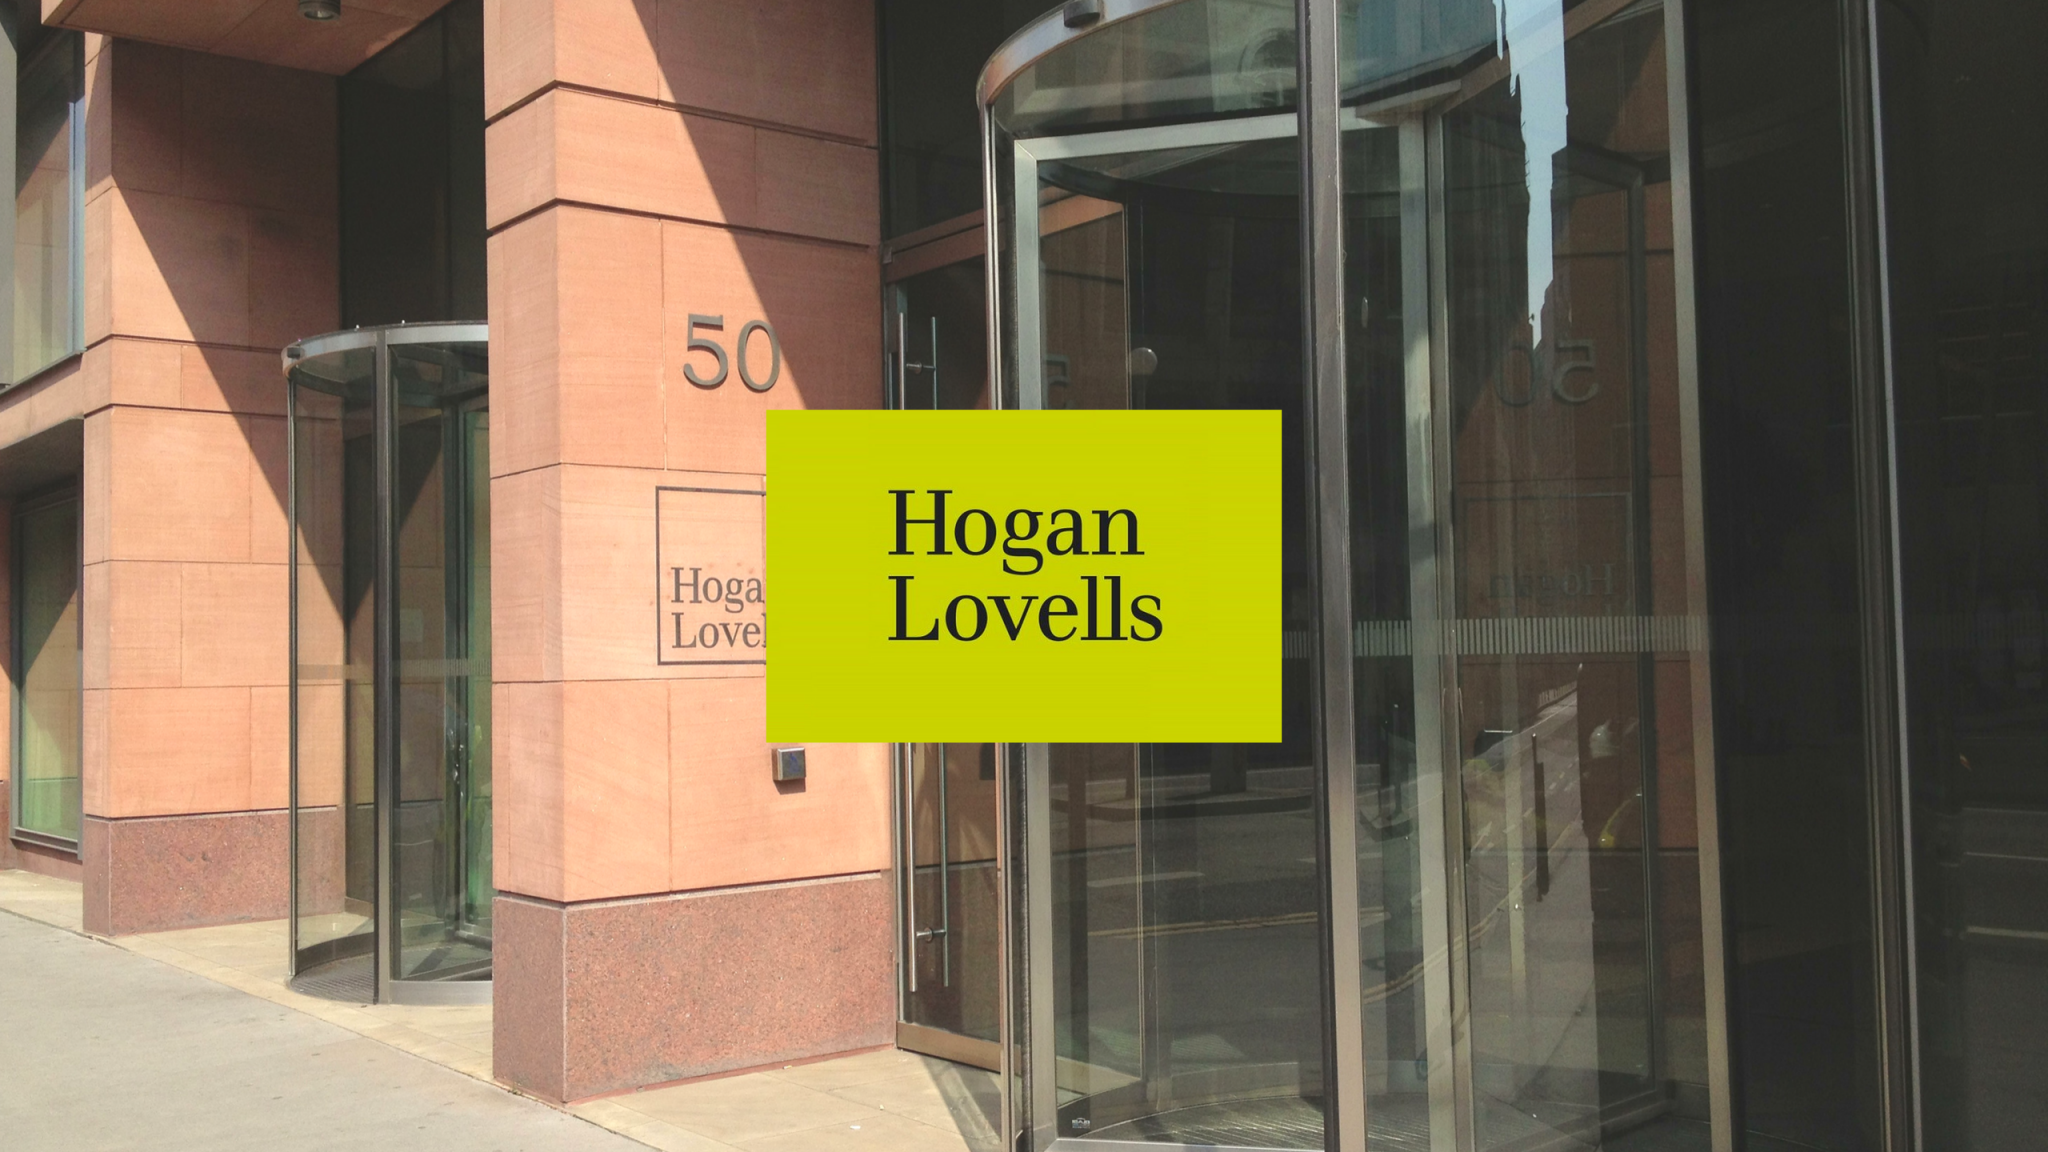 Hogan Lovells Best Law Firms in the World UpSlide Top 50